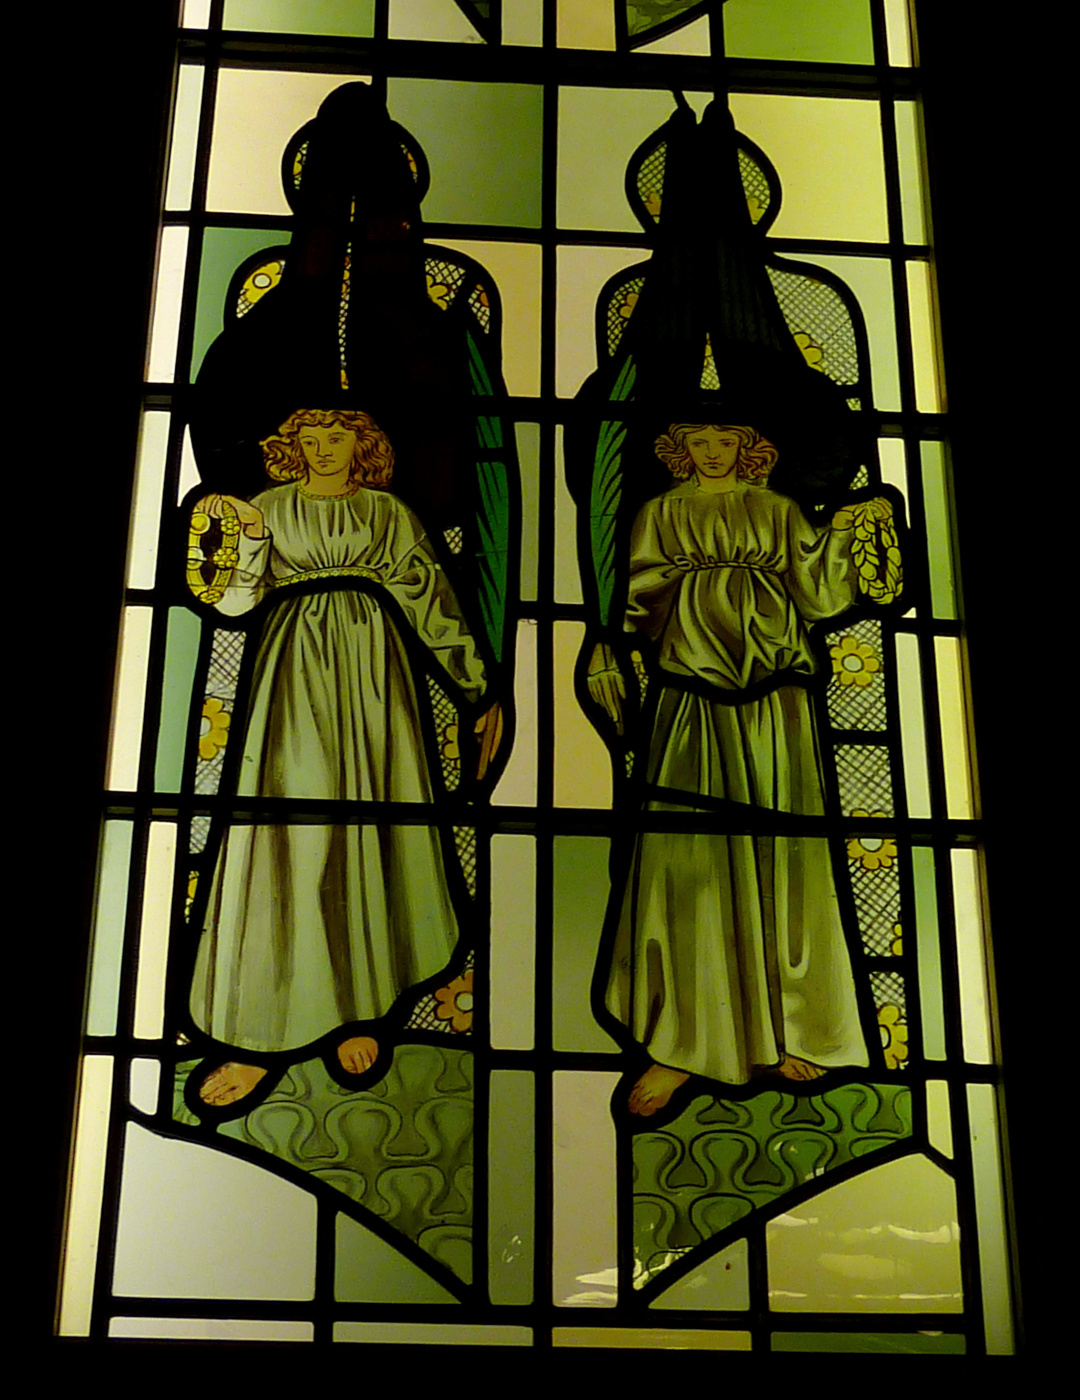 William Morris. Stained glass windows in Bradford Cathedral, Stott Hill, Bradford, West Yorkshire, England